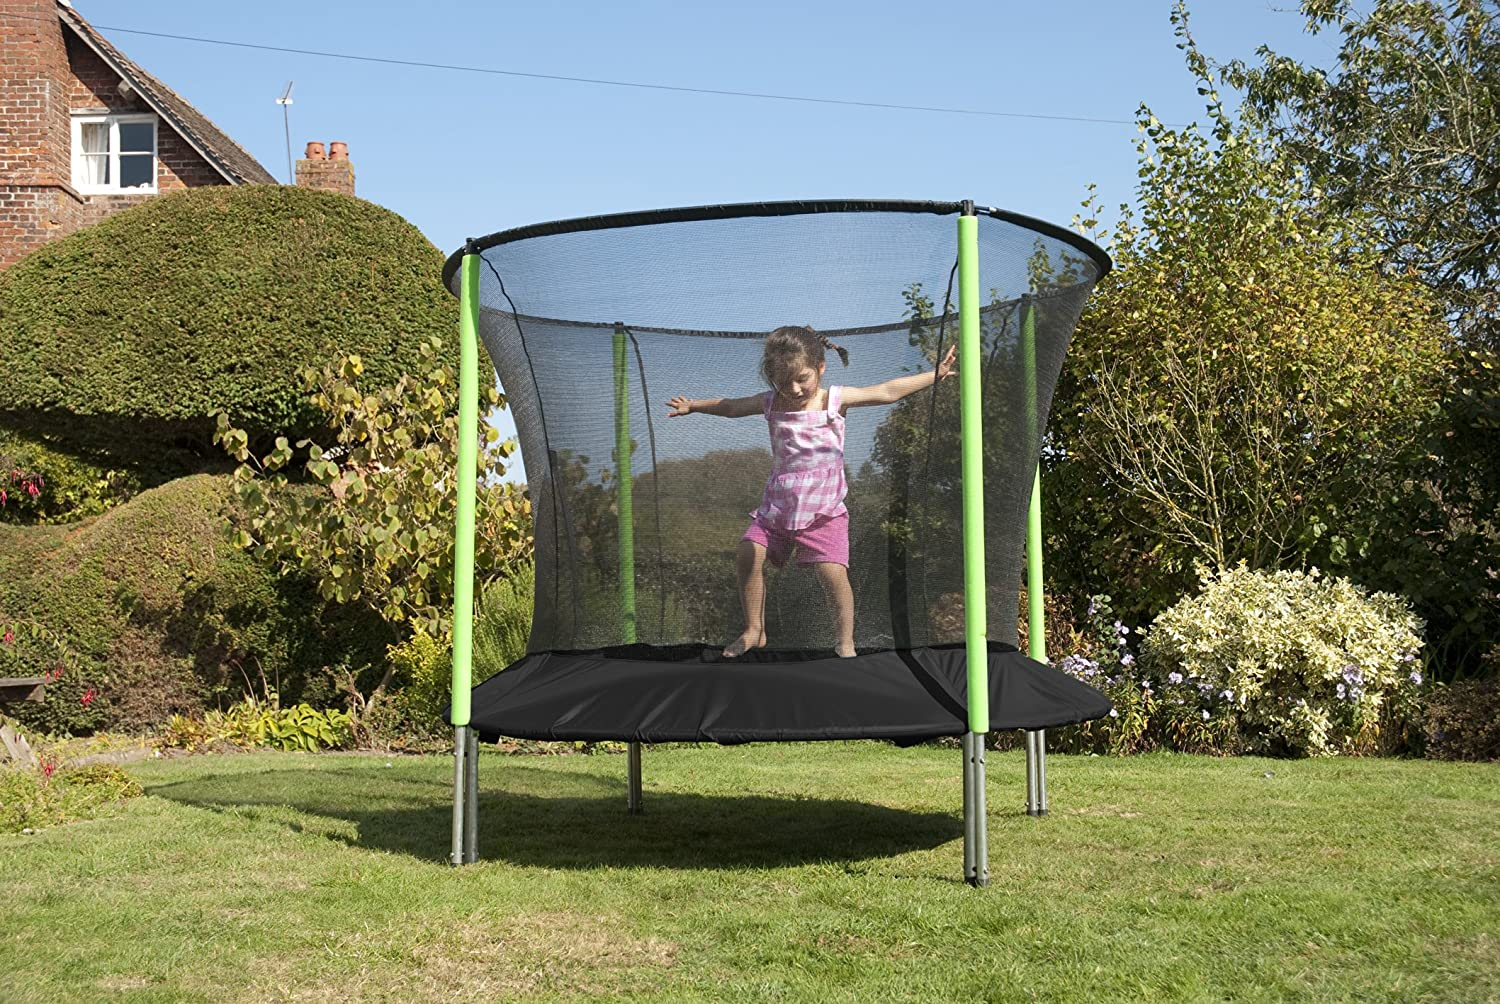 TP 231 – Big Bouncer Trampolin, 1.83 m günstig bestellen